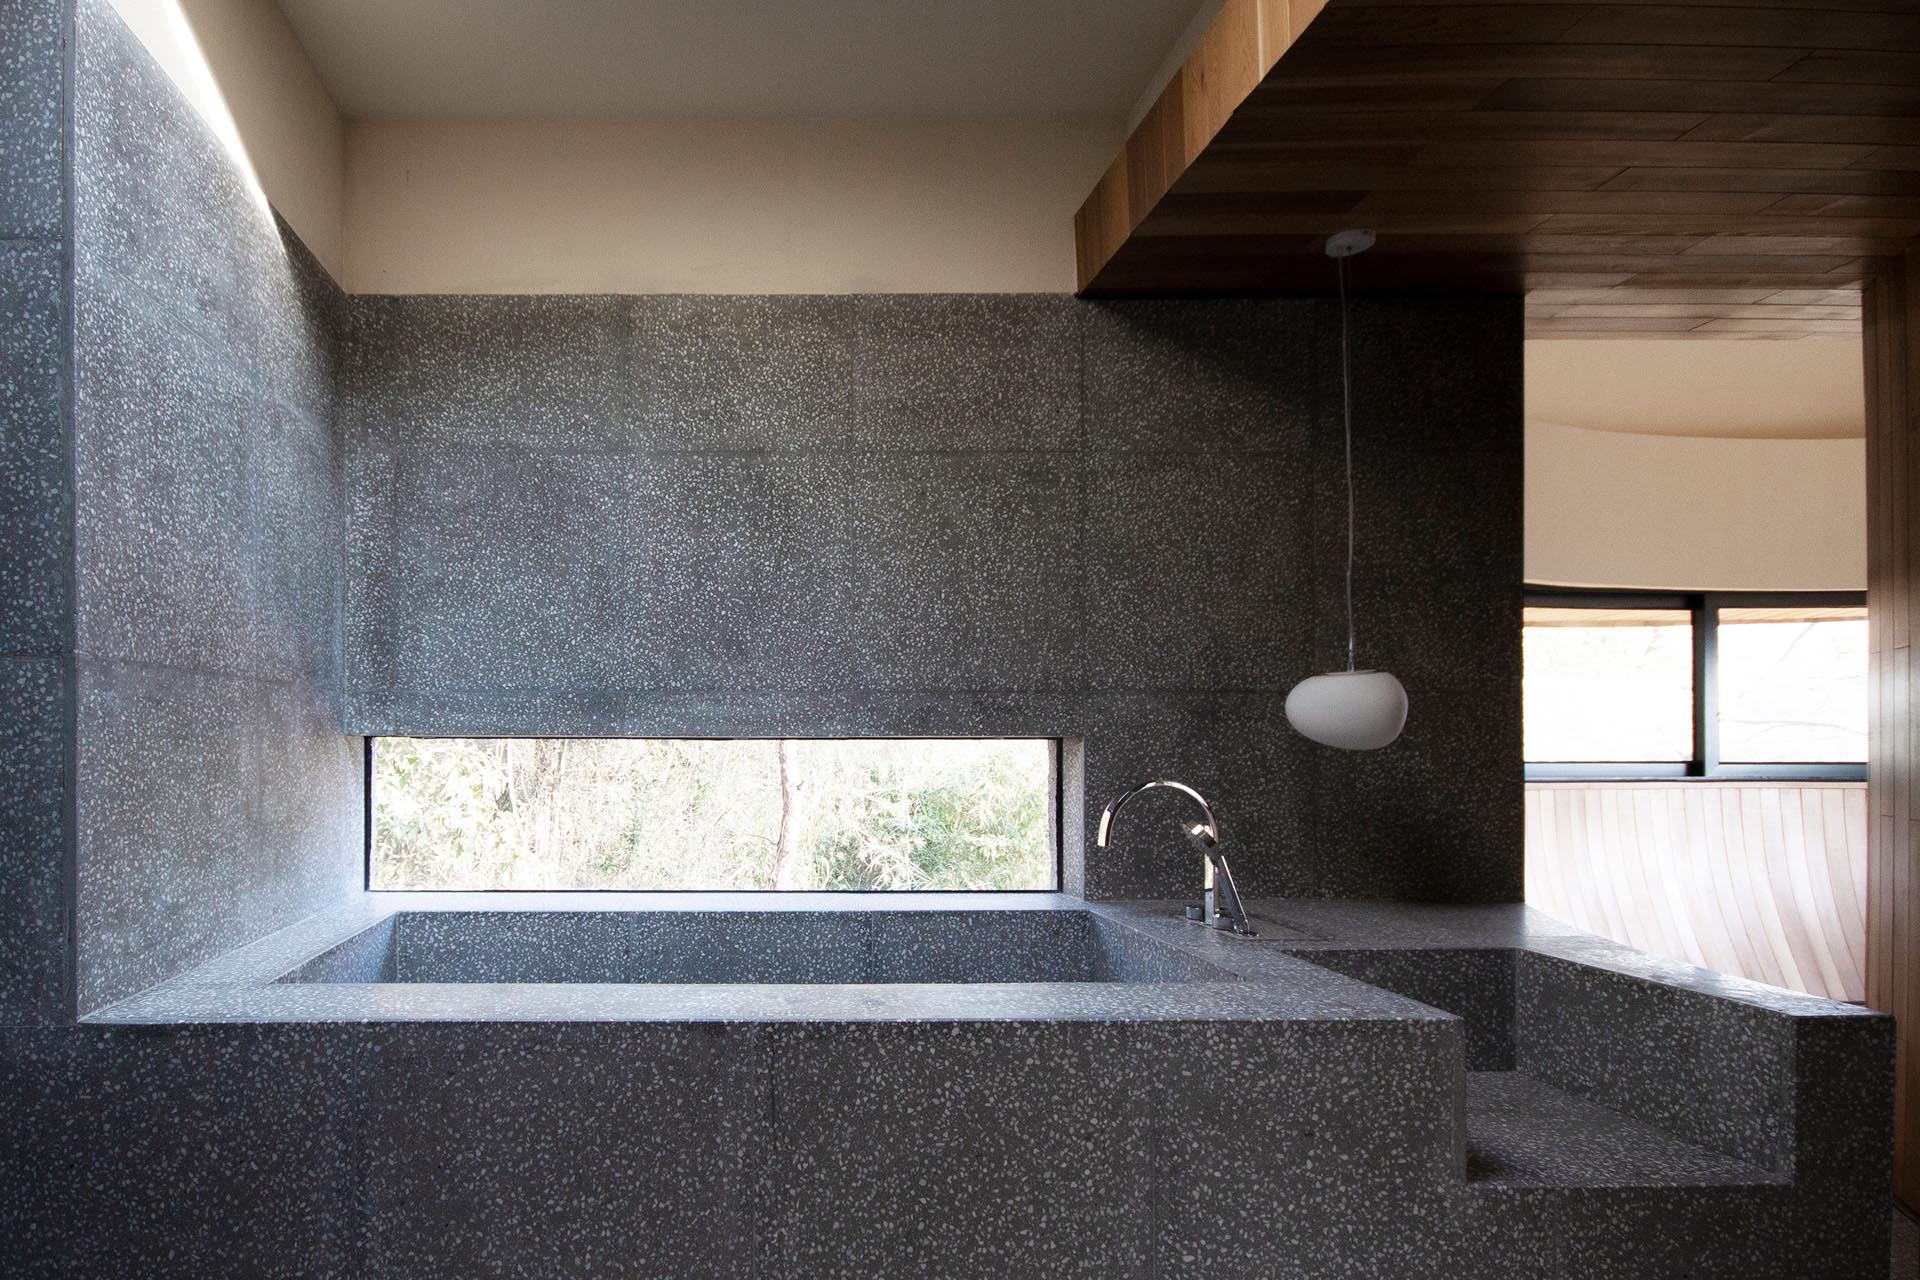 In this modern bathroom, there's a built-in bathtub with a horizontal window, which was designed to ensure privacy from the walking paths outside, while still allowing views of nature.